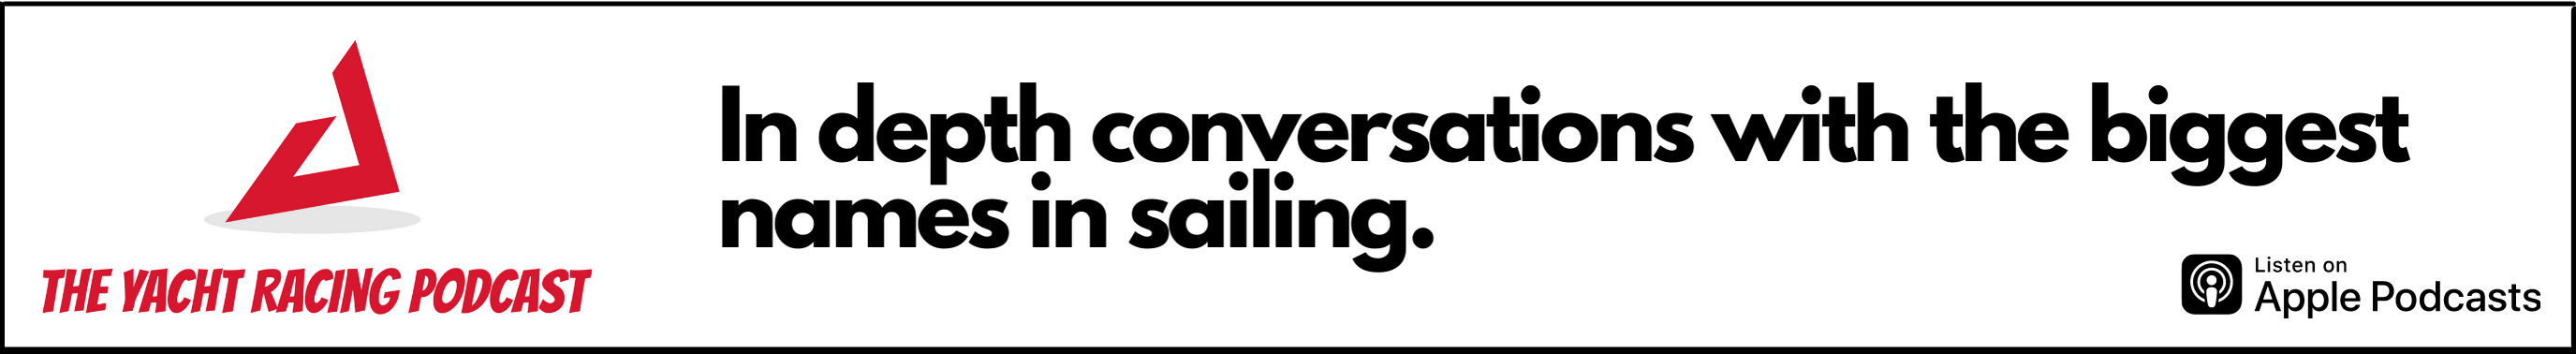 Yacht Racing Podcast